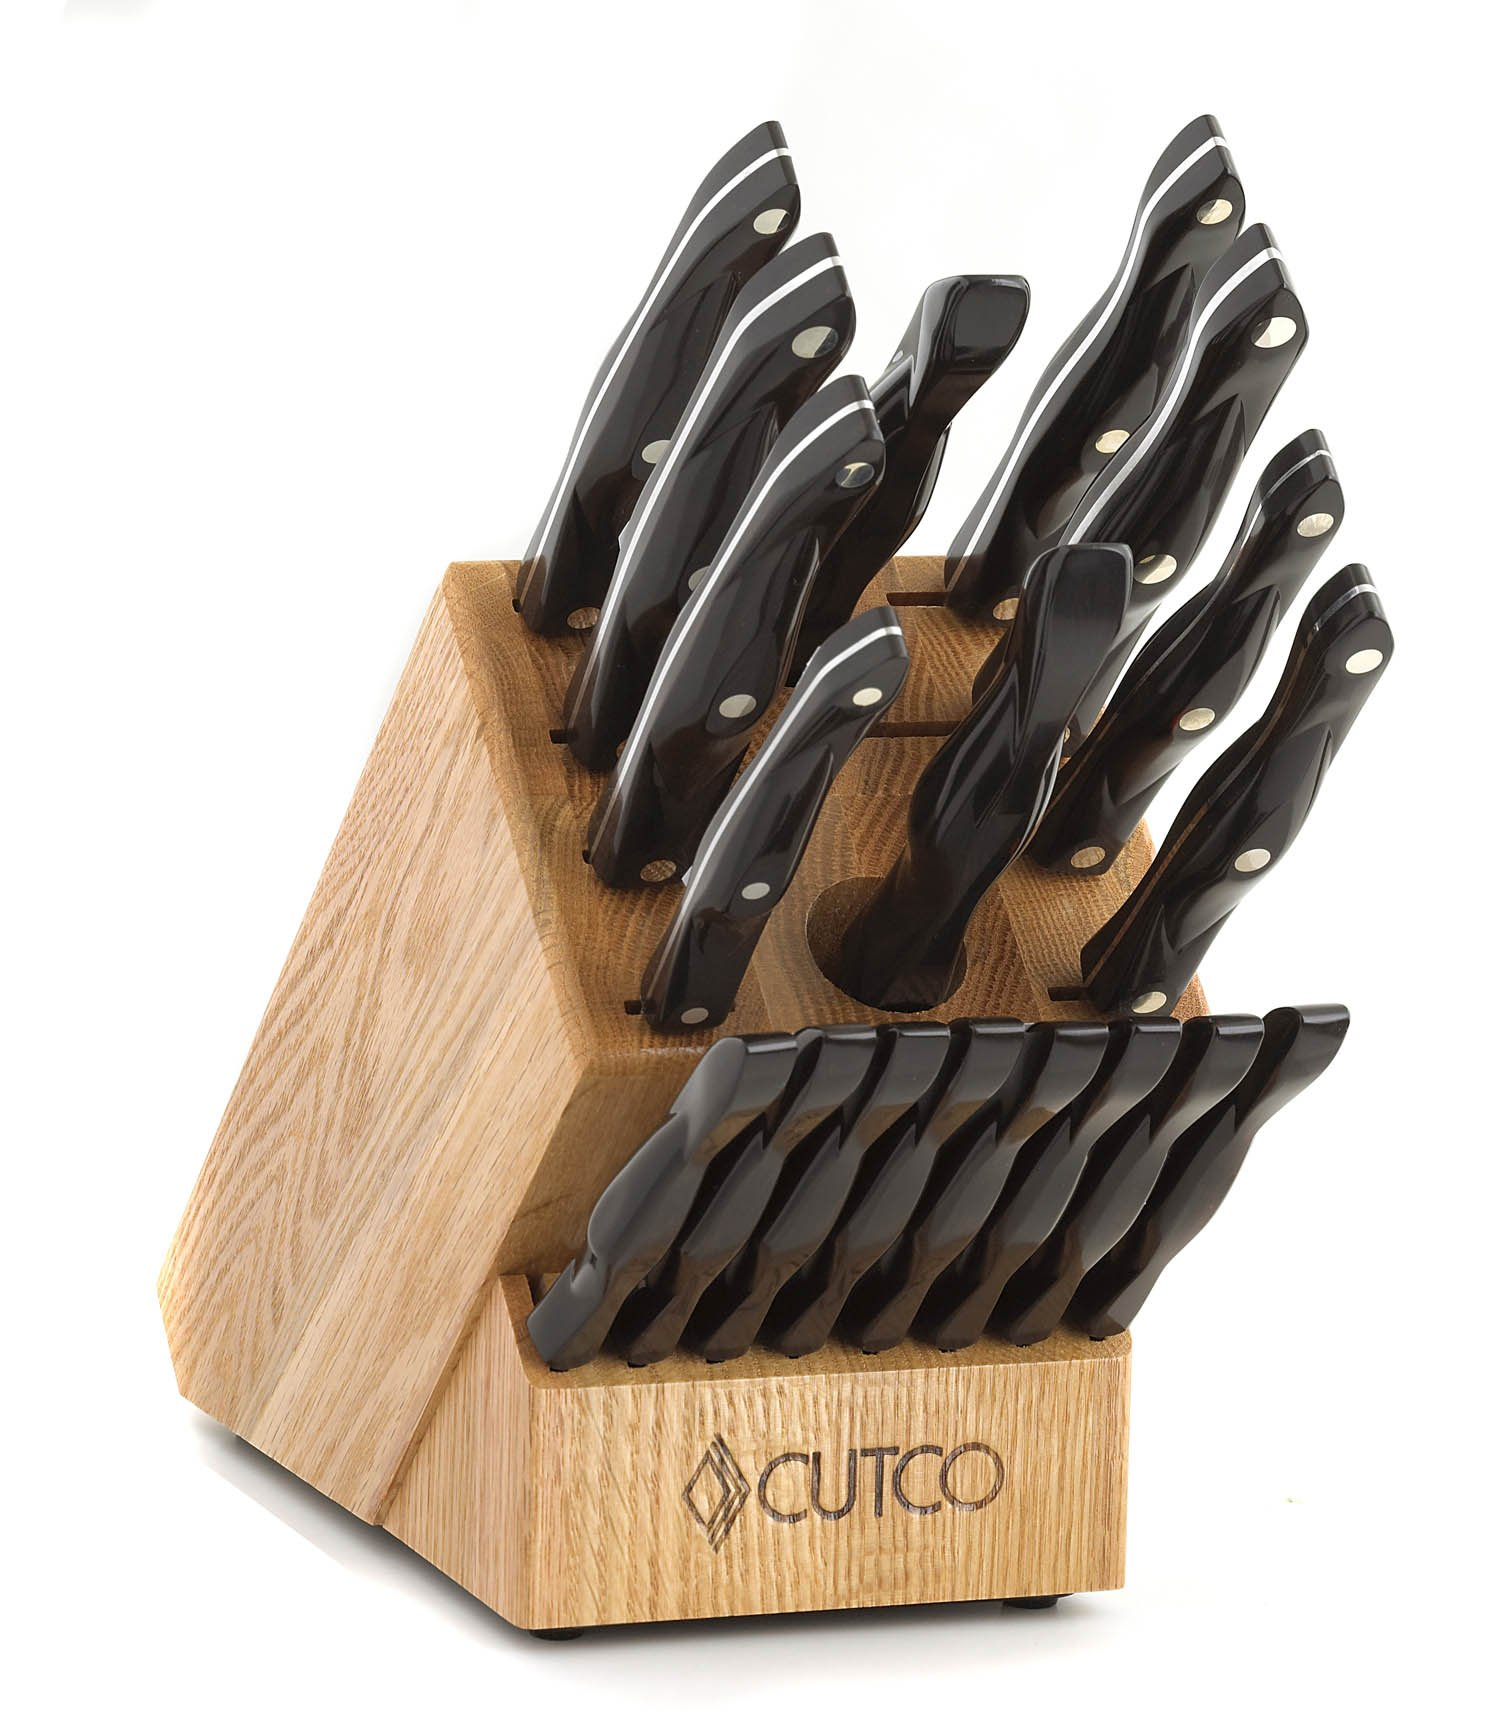 CUTCO Model 1818 Homemaker Set + 8 with #1725 full size chef knife...............18 High Carbon Stainless knives & forks with Classic Dark Brown (often called ''Black'') handles in factory-sealed plastic bags............#1748 Honey Finish Oak knife block, #